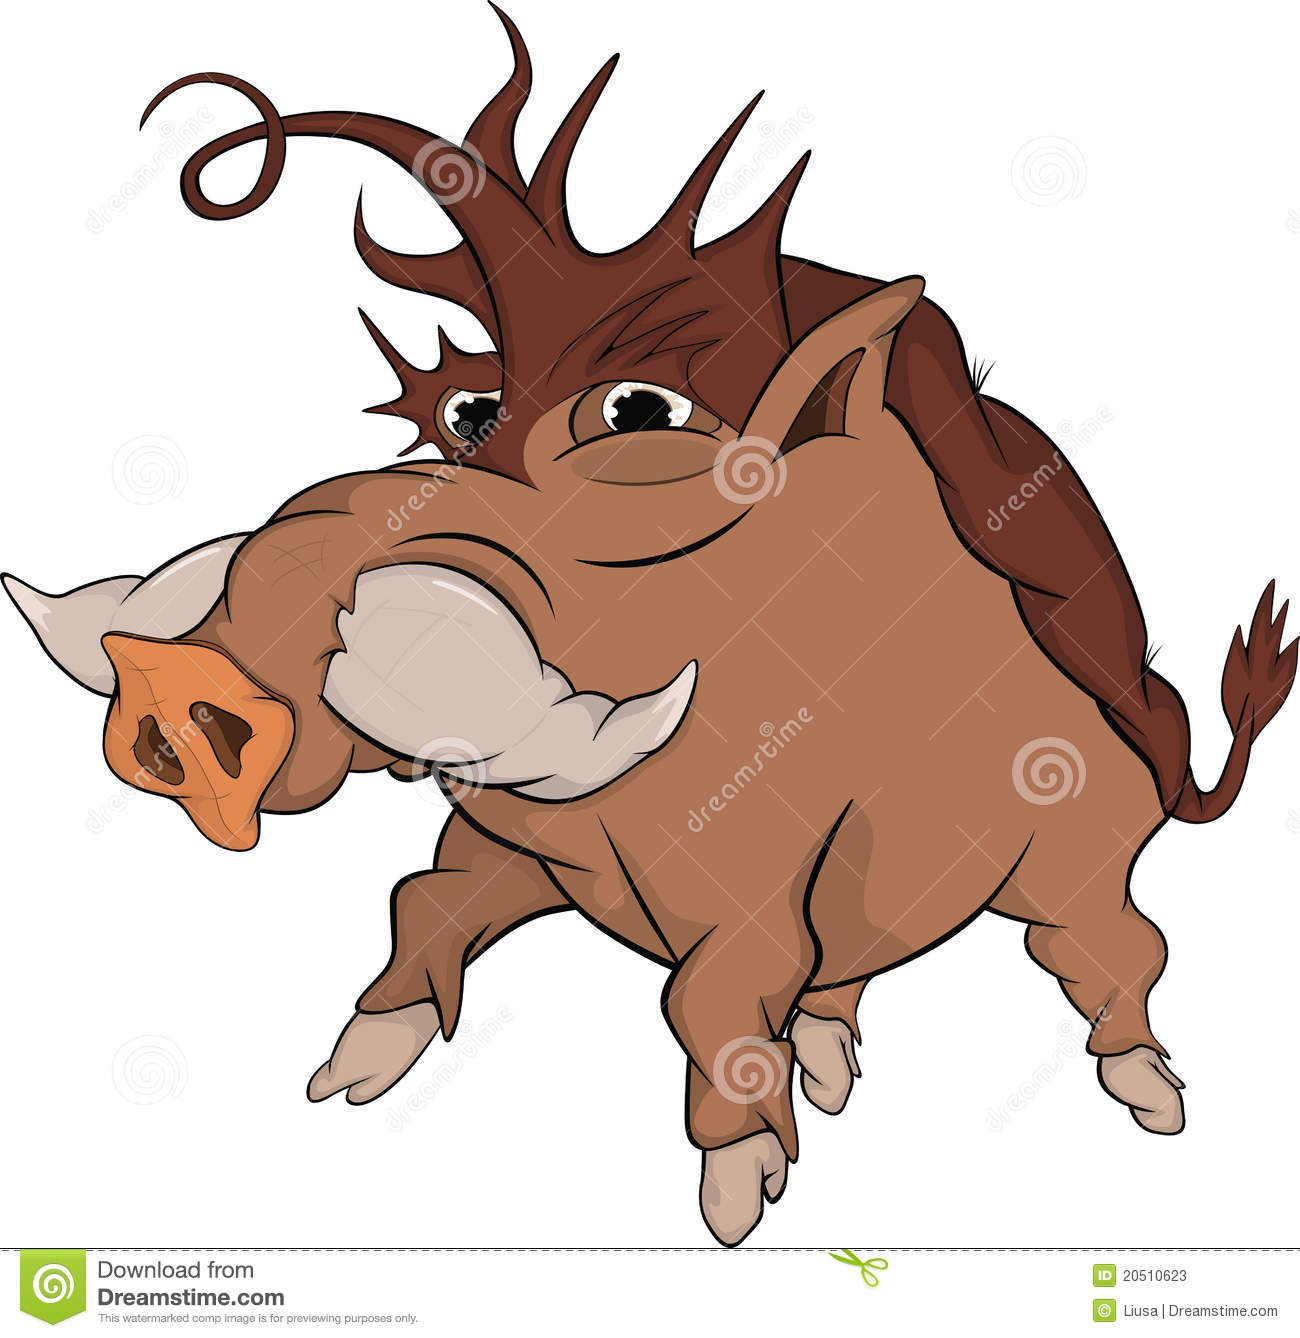 wild hog map with Stock Photos Wild Boar Cartoon Image20510623 on BrownCreeperWinterMap moreover Royalty Free Stock Photo Warthog Running Hog Image26848495 further Stock Photos Porcupine Image2894713 additionally Hedgehogs moreover File Canis lupus dingo  Fraser Island.